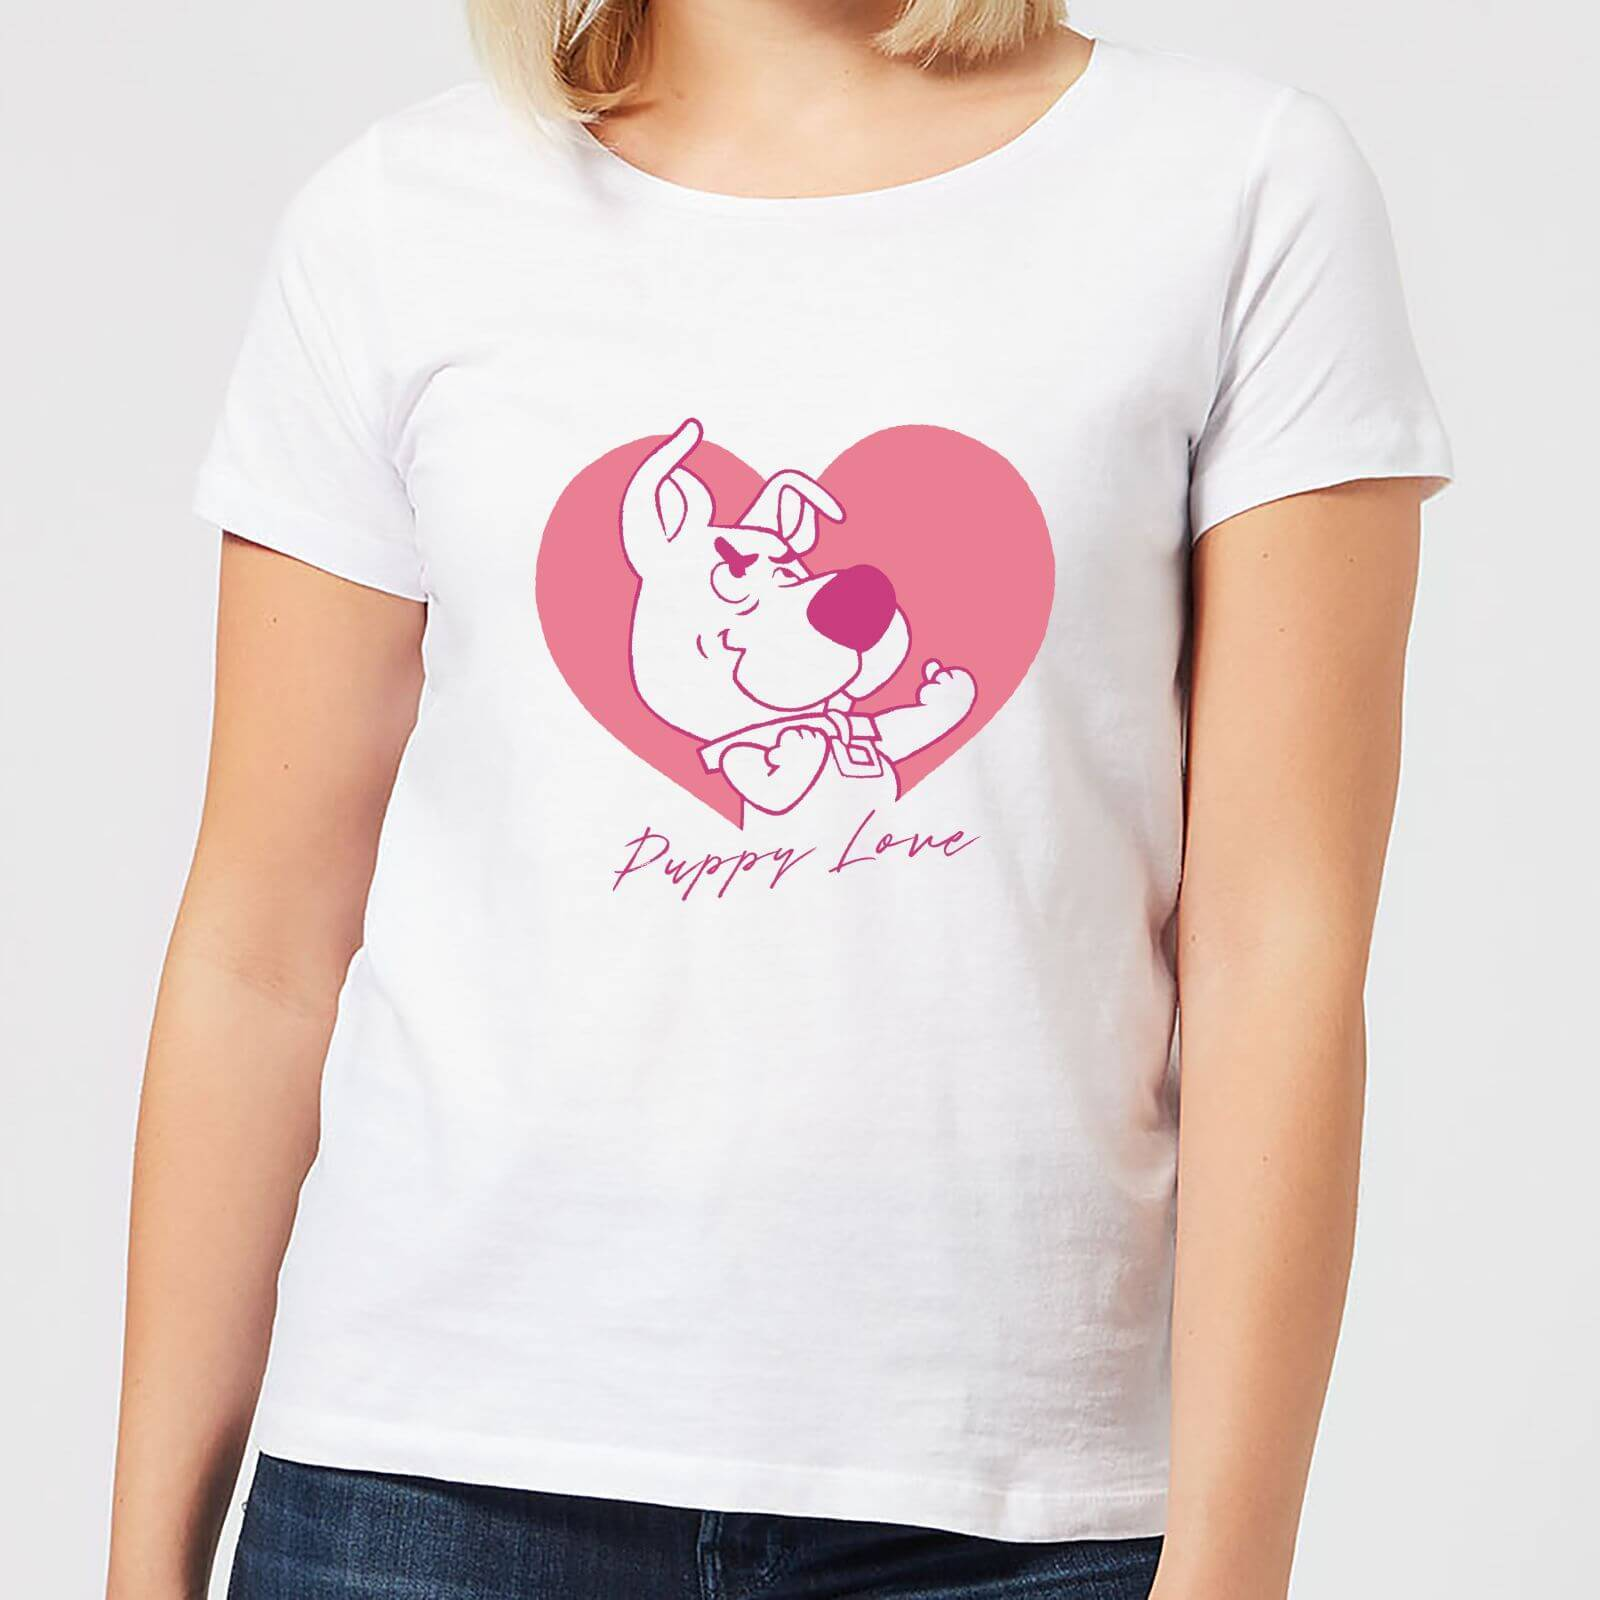 Scooby Doo Puppy Love Women's T-Shirt - White - M - White